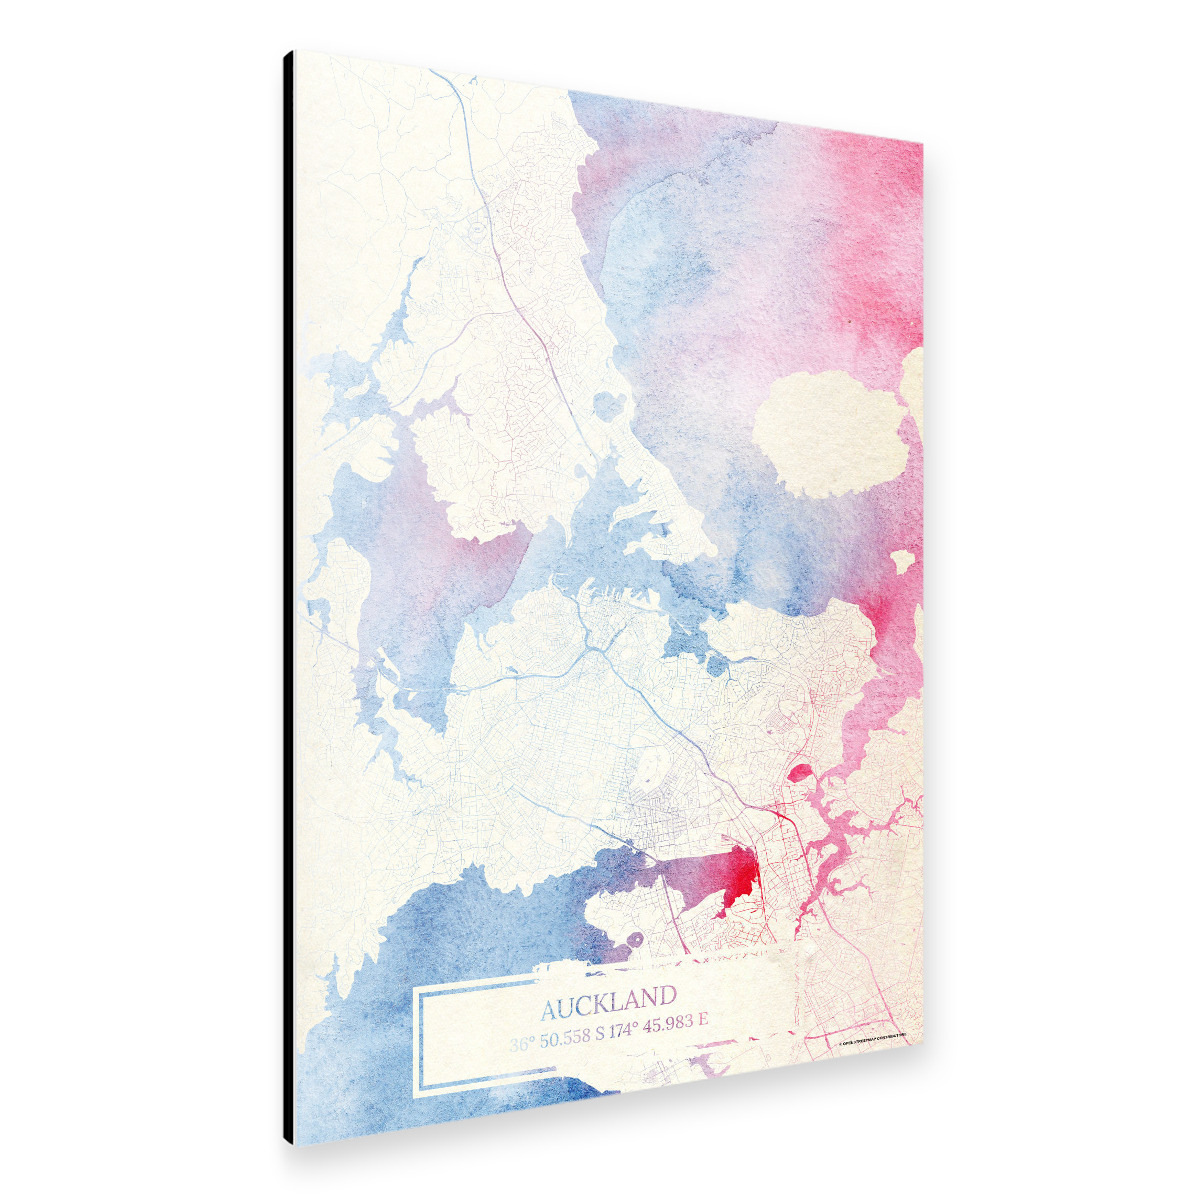 Auckland Neuseeland Map Rose And Serenity I als Alu-Print ...